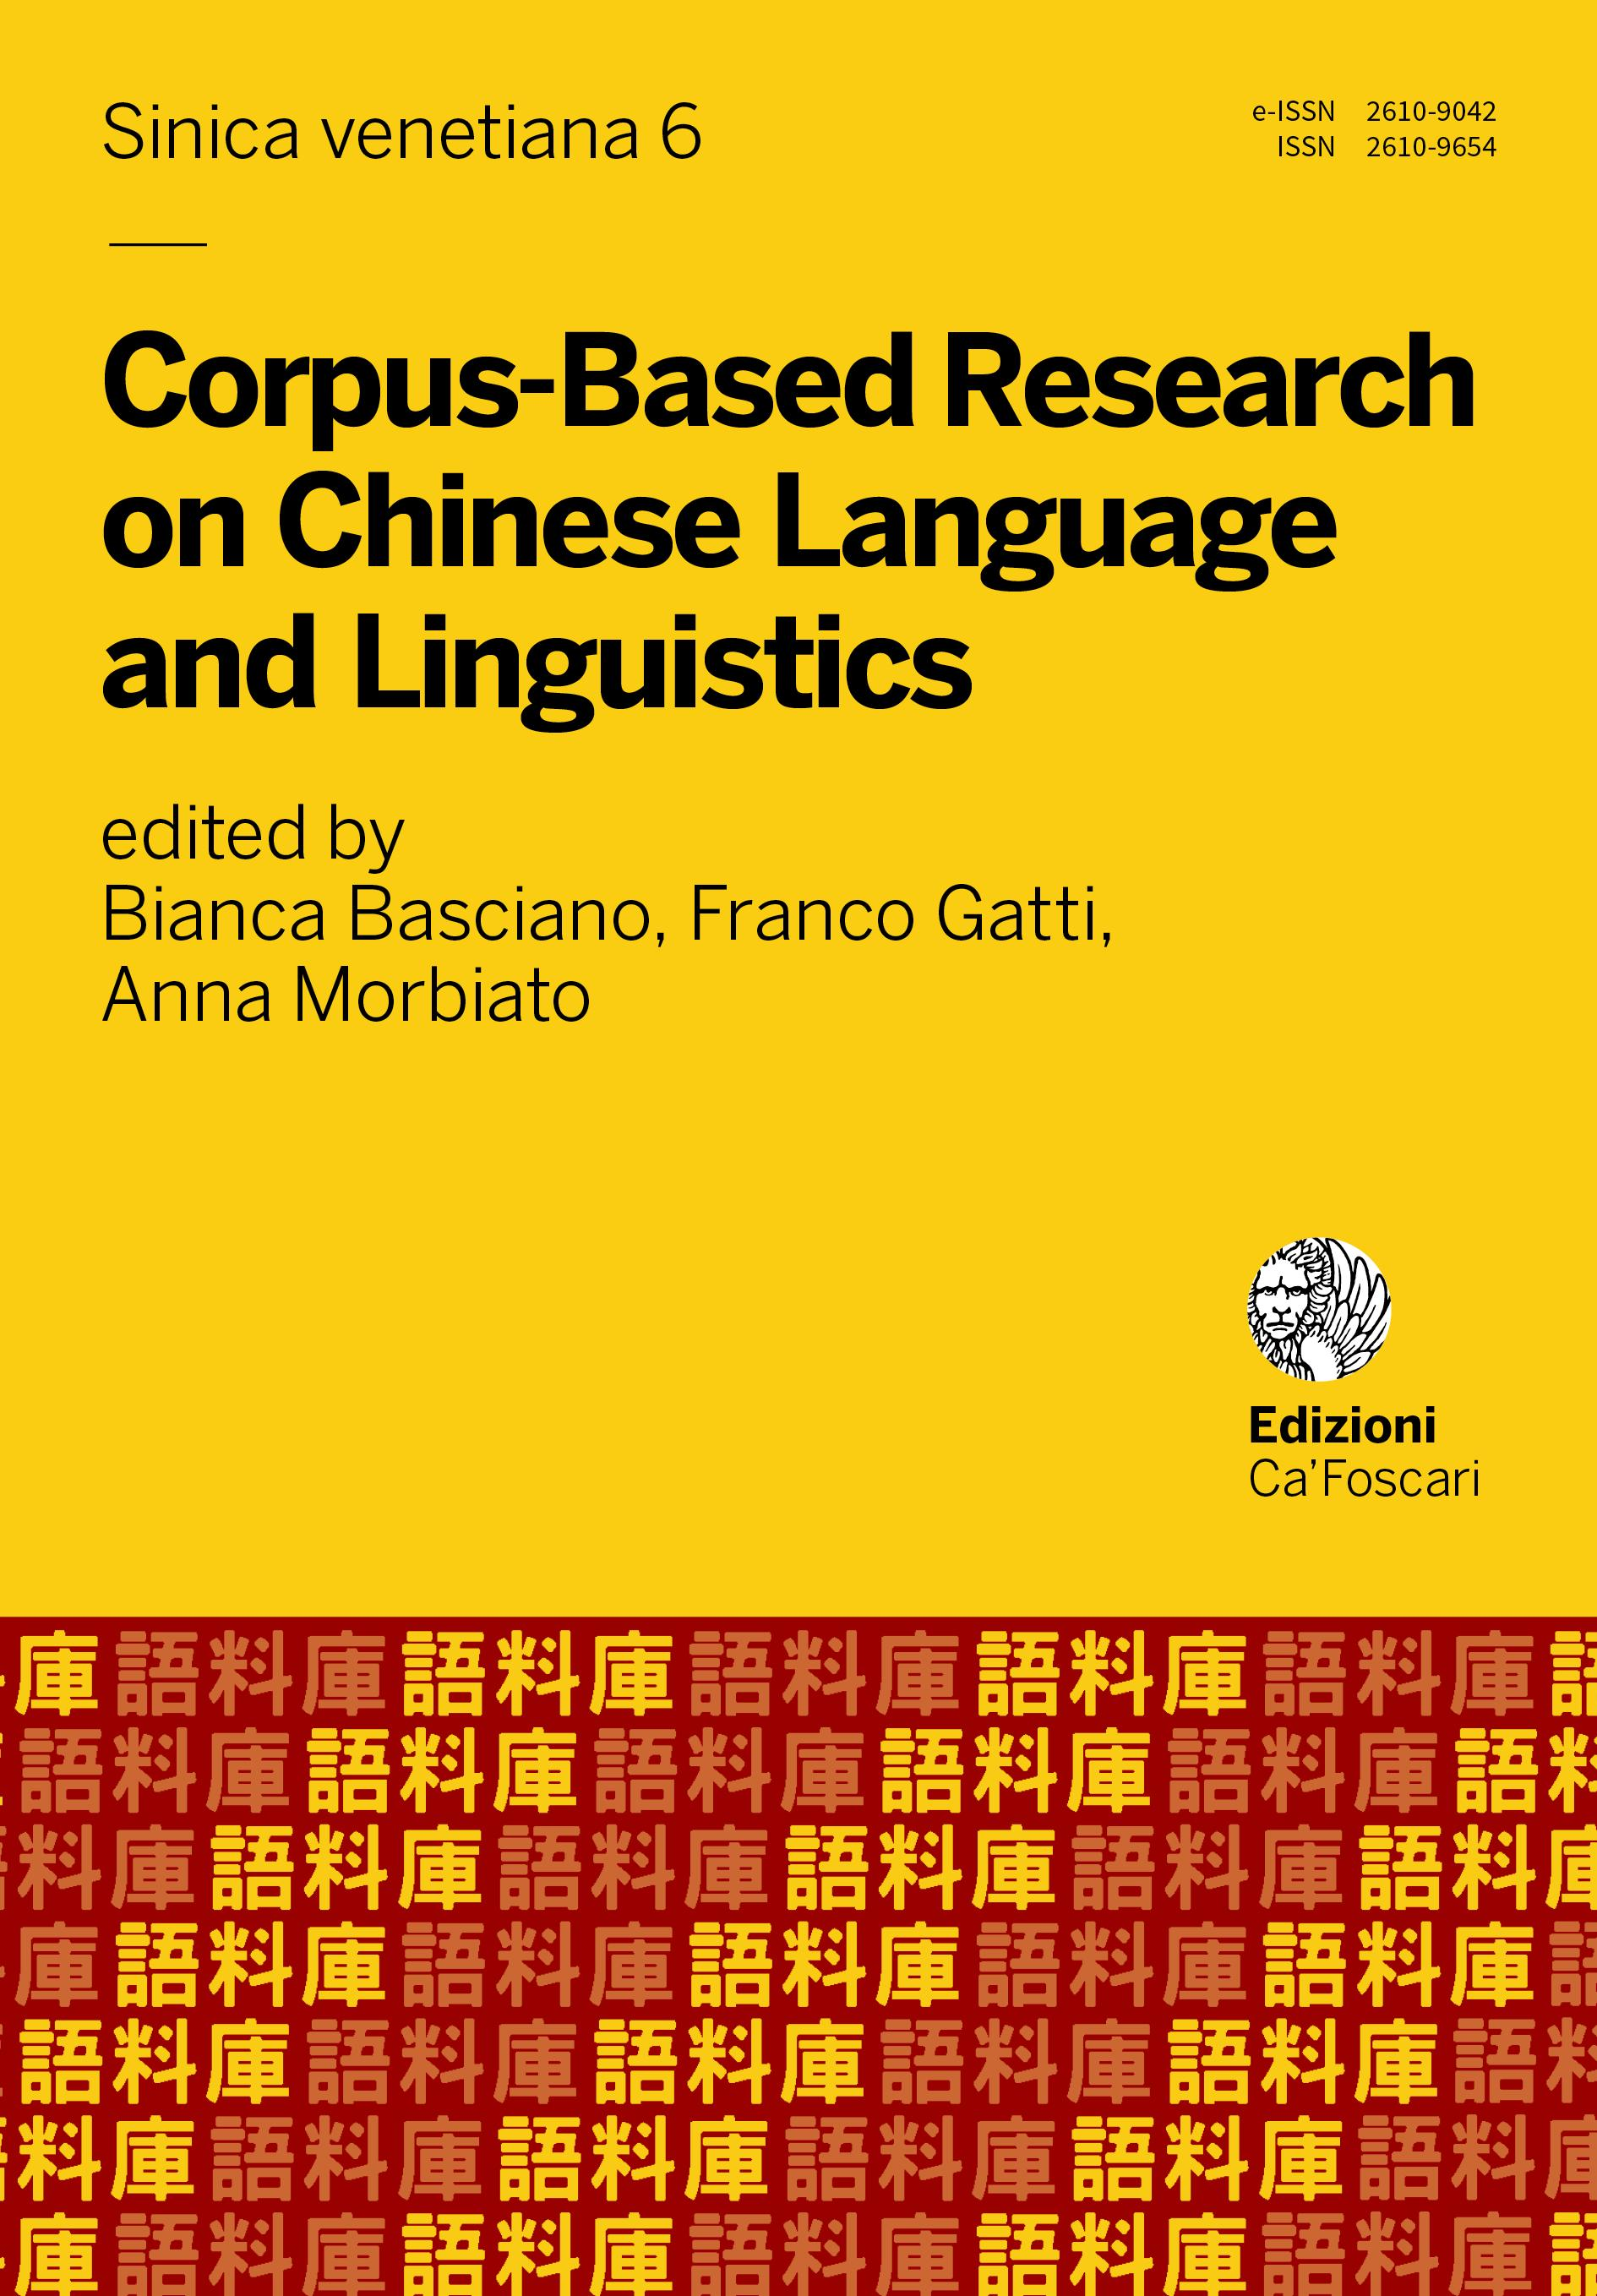 Corpus-Based Research on Chinese Language and Linguistics